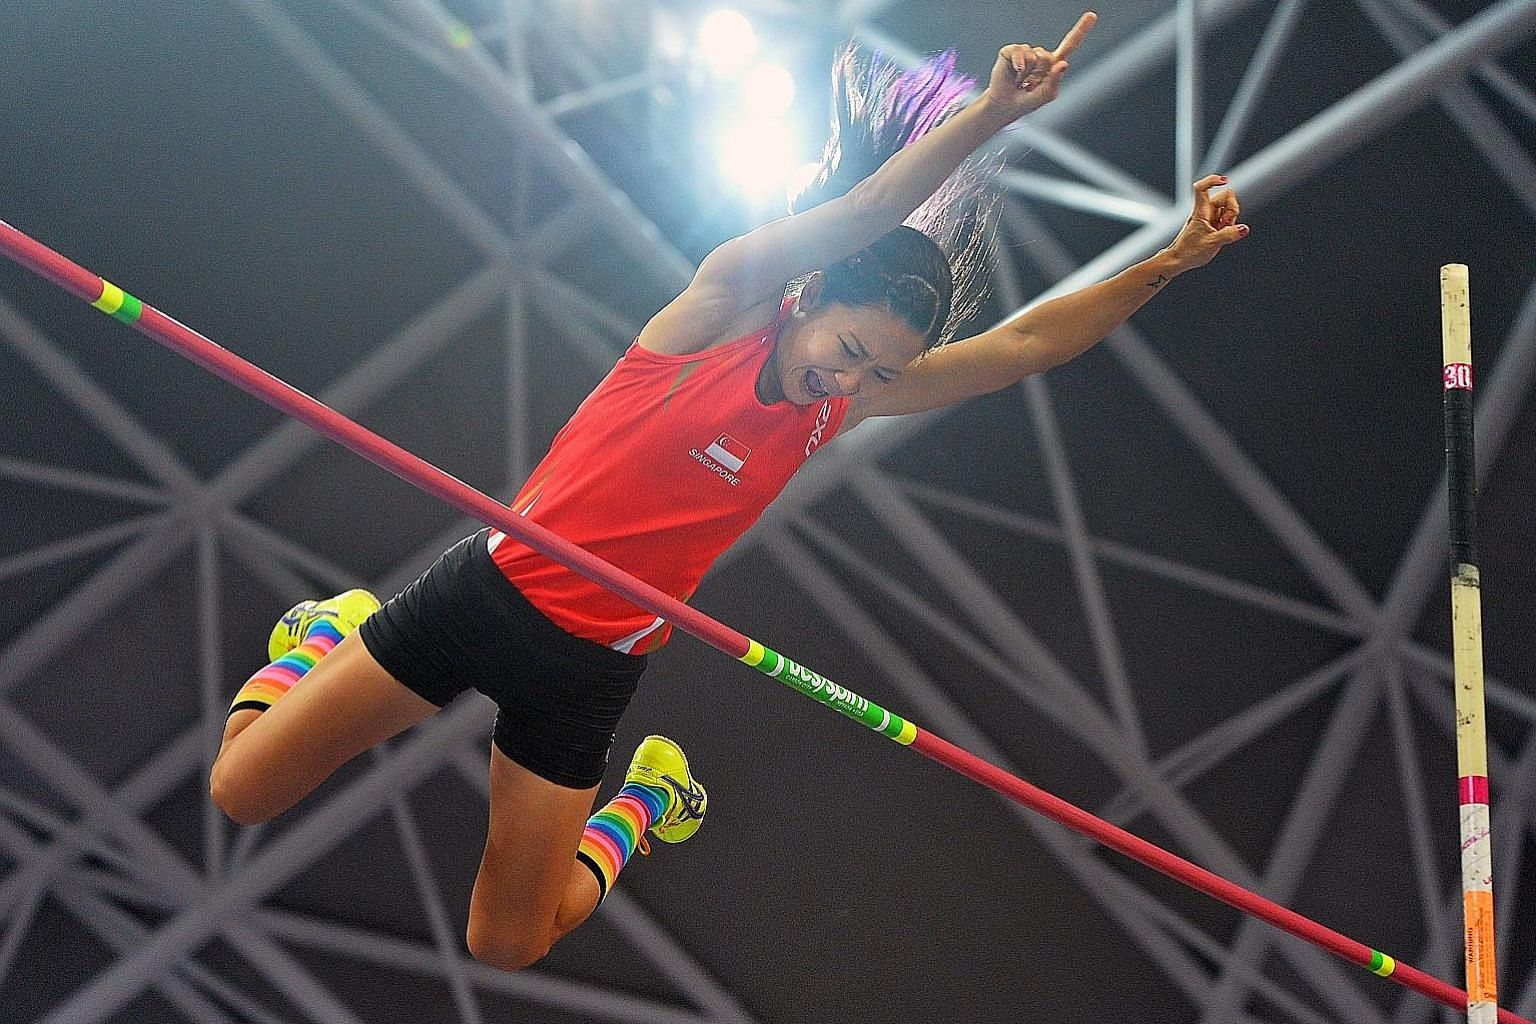 National pole vaulter Rachel Yang will be representing Singapore at the Kuala Lumpur SEA Games from Aug 19-30. She holds the national record of 3.91m in her event.